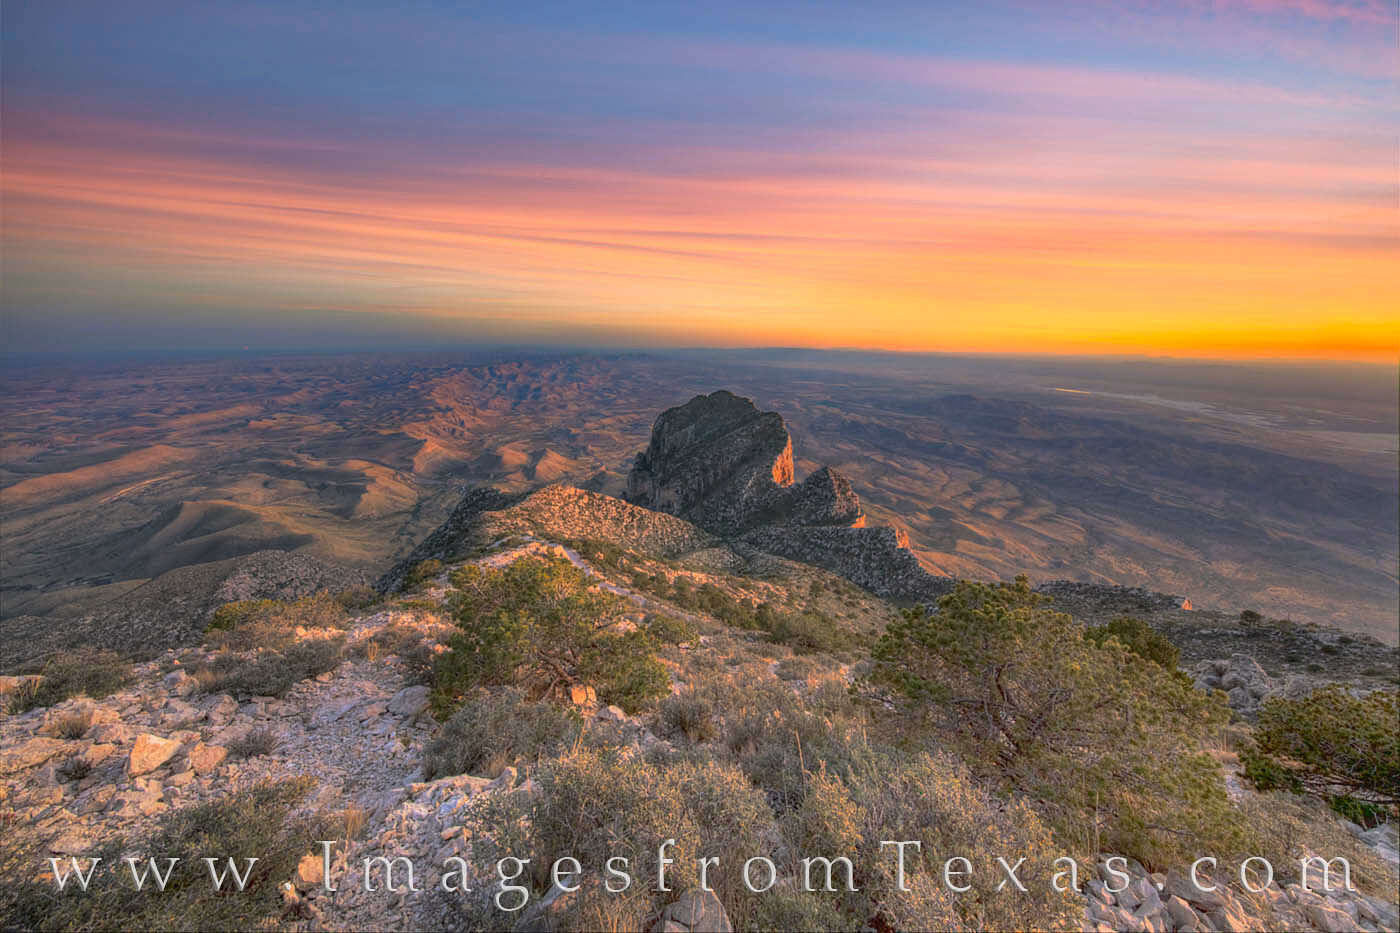 I've shot at this location above El Capitan in the Guadalupe Mountains several times, always hoping for good light at sunset...